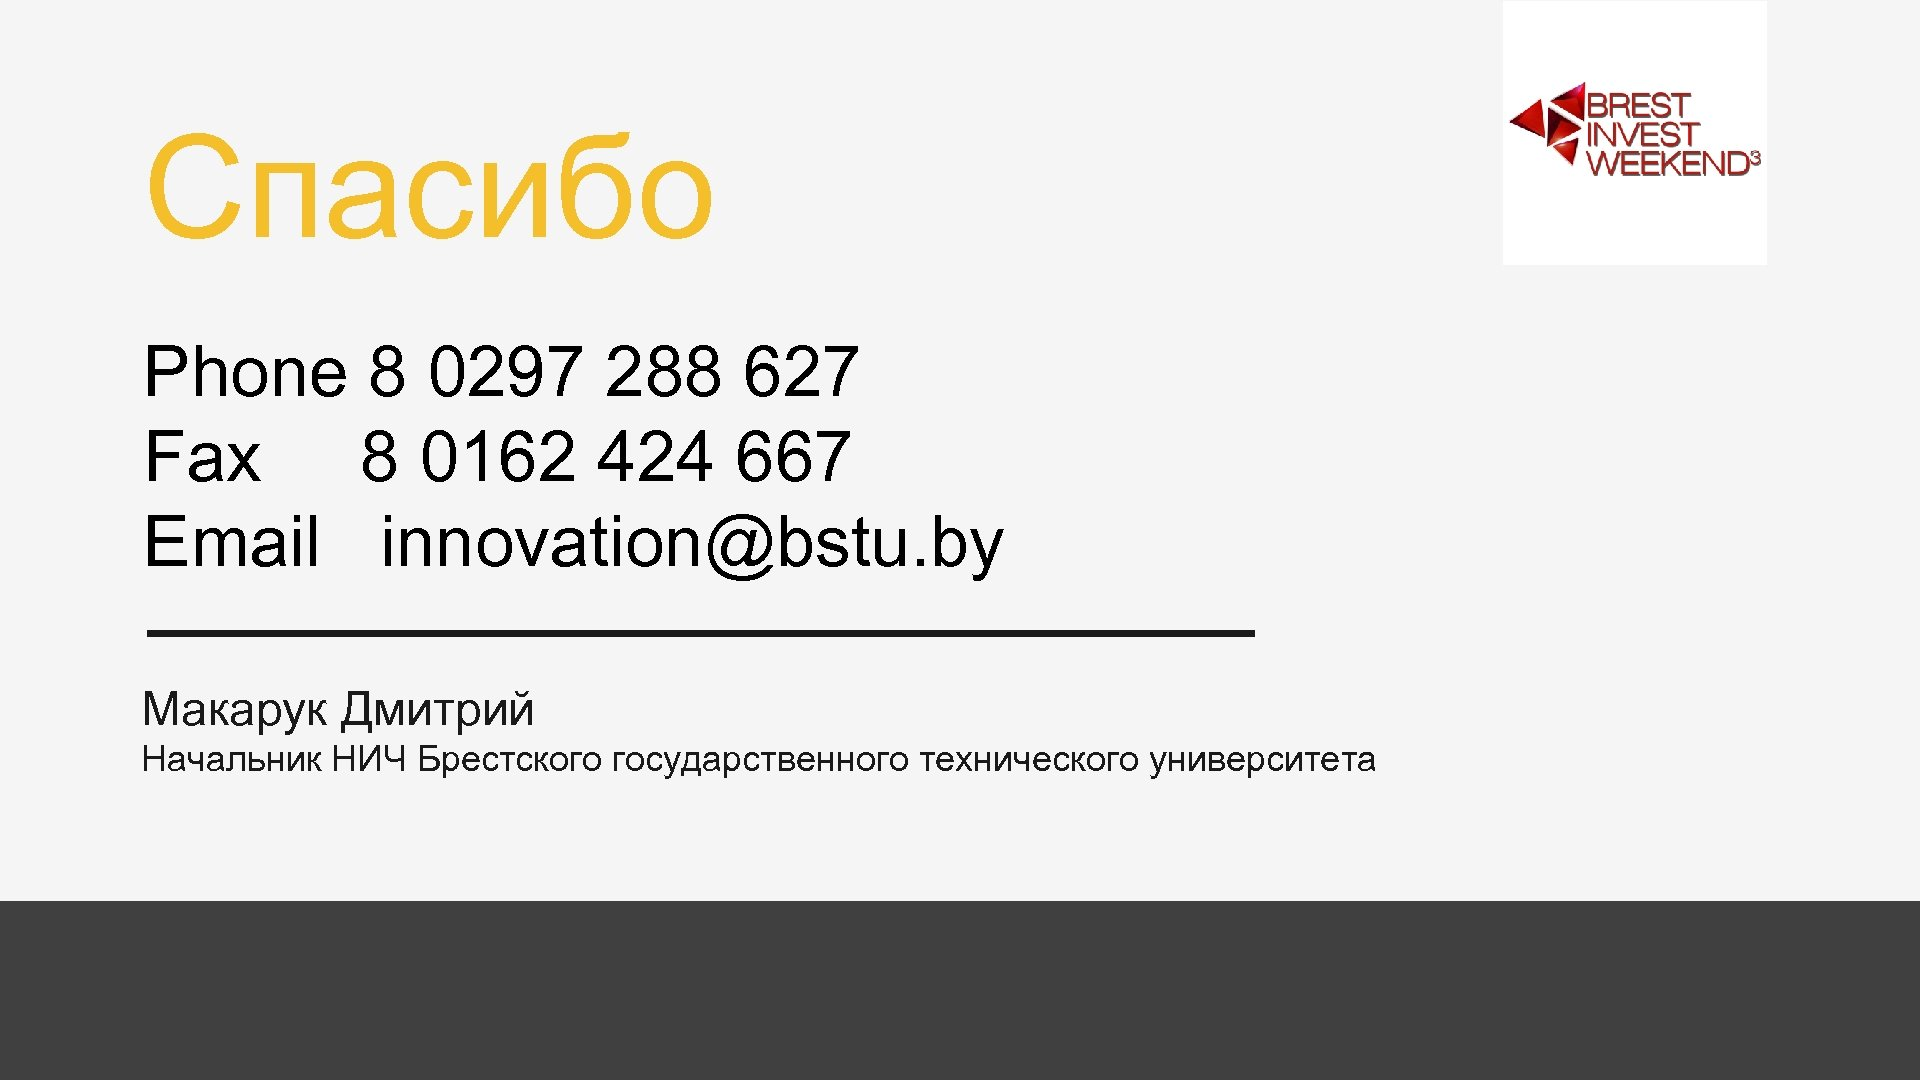 Спасибо Phone 8 0297 288 627 Fax 8 0162 424 667 Email innovation@bstu. by